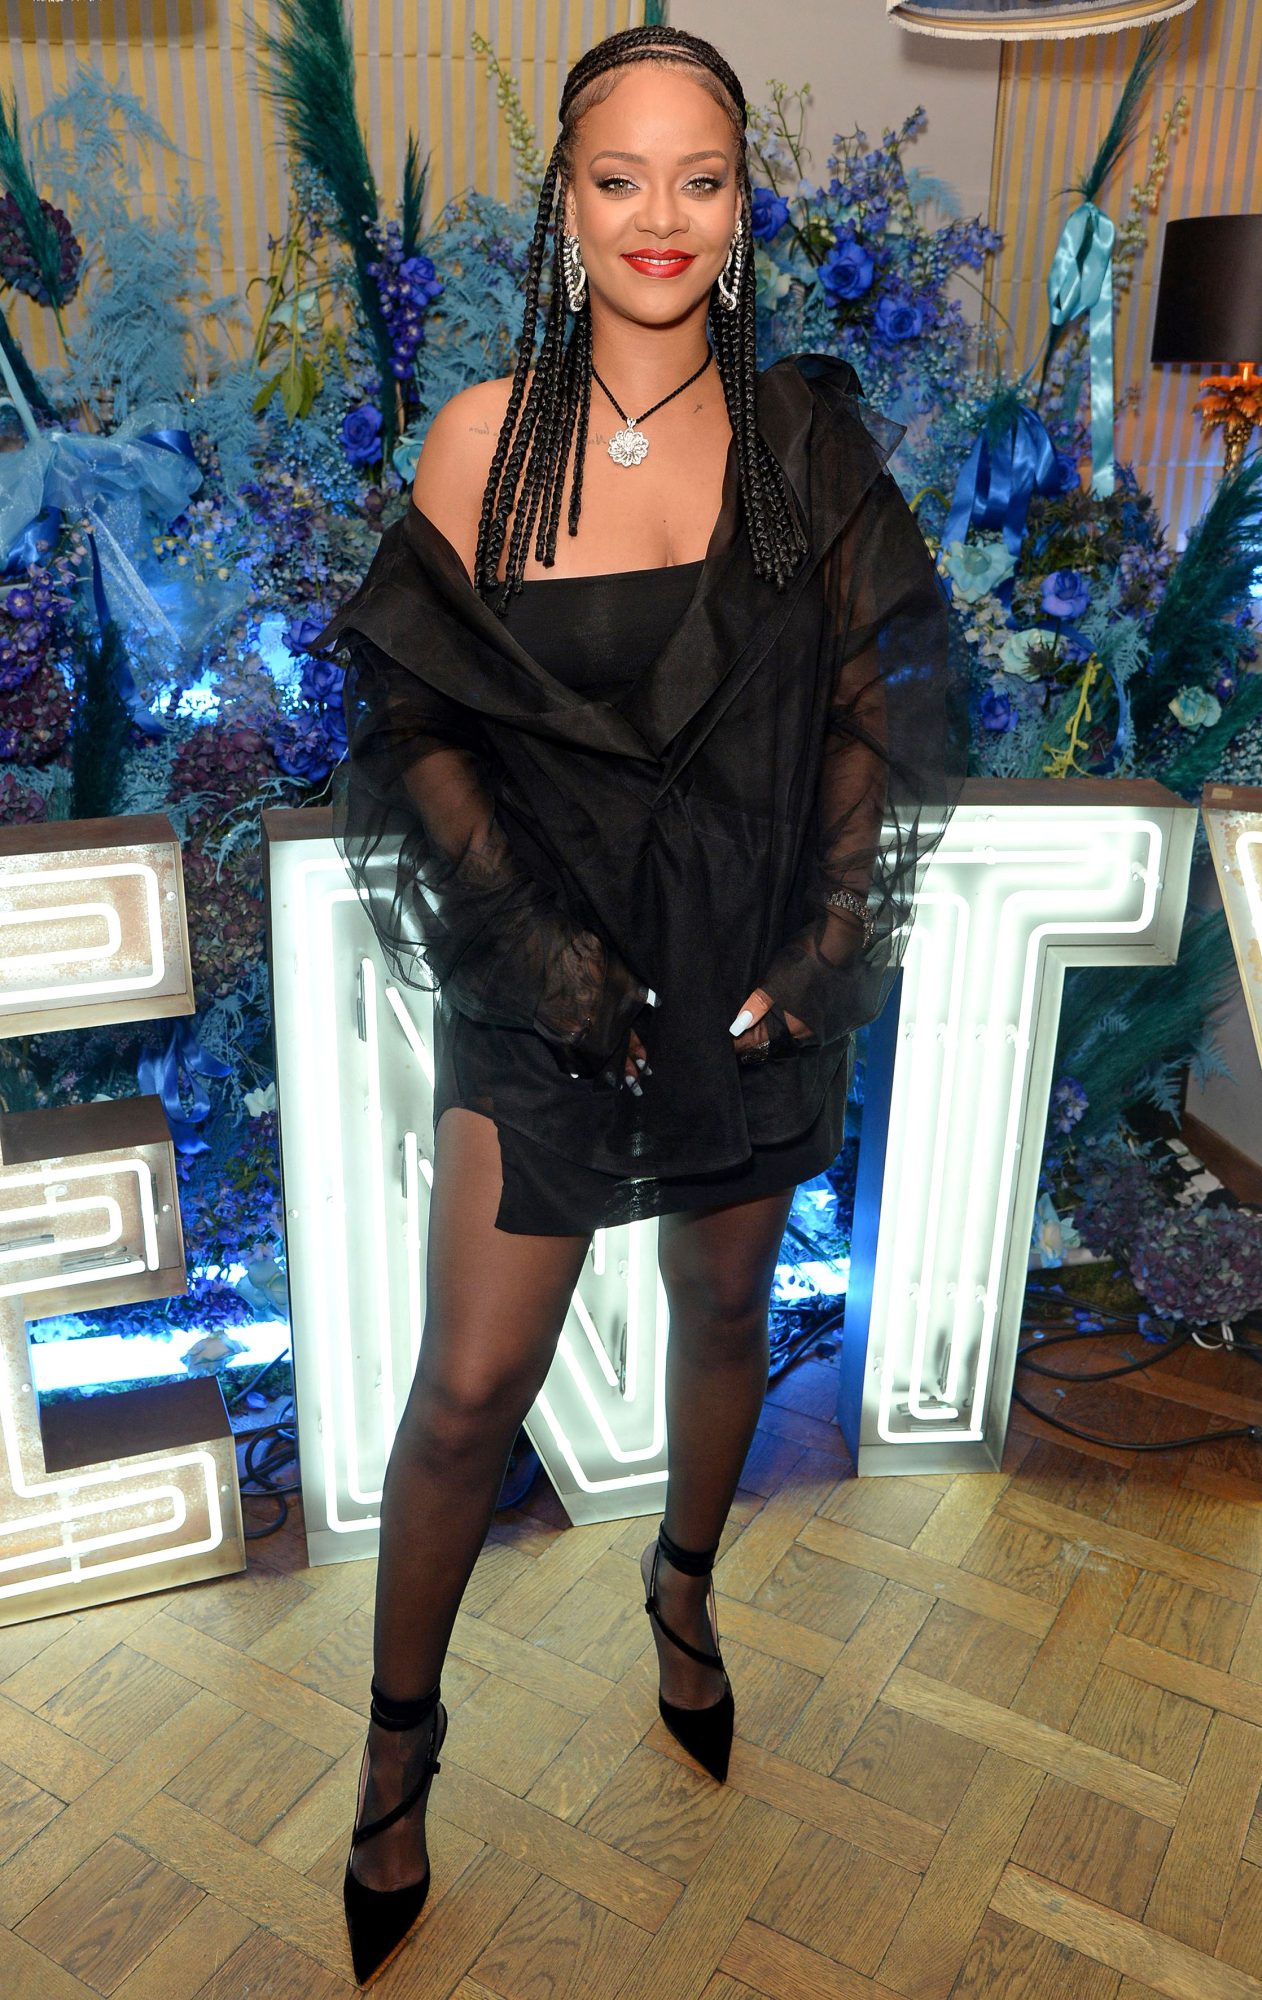 Rihanna Fenty party, Laylow, London, UK - 02 Dec 2019